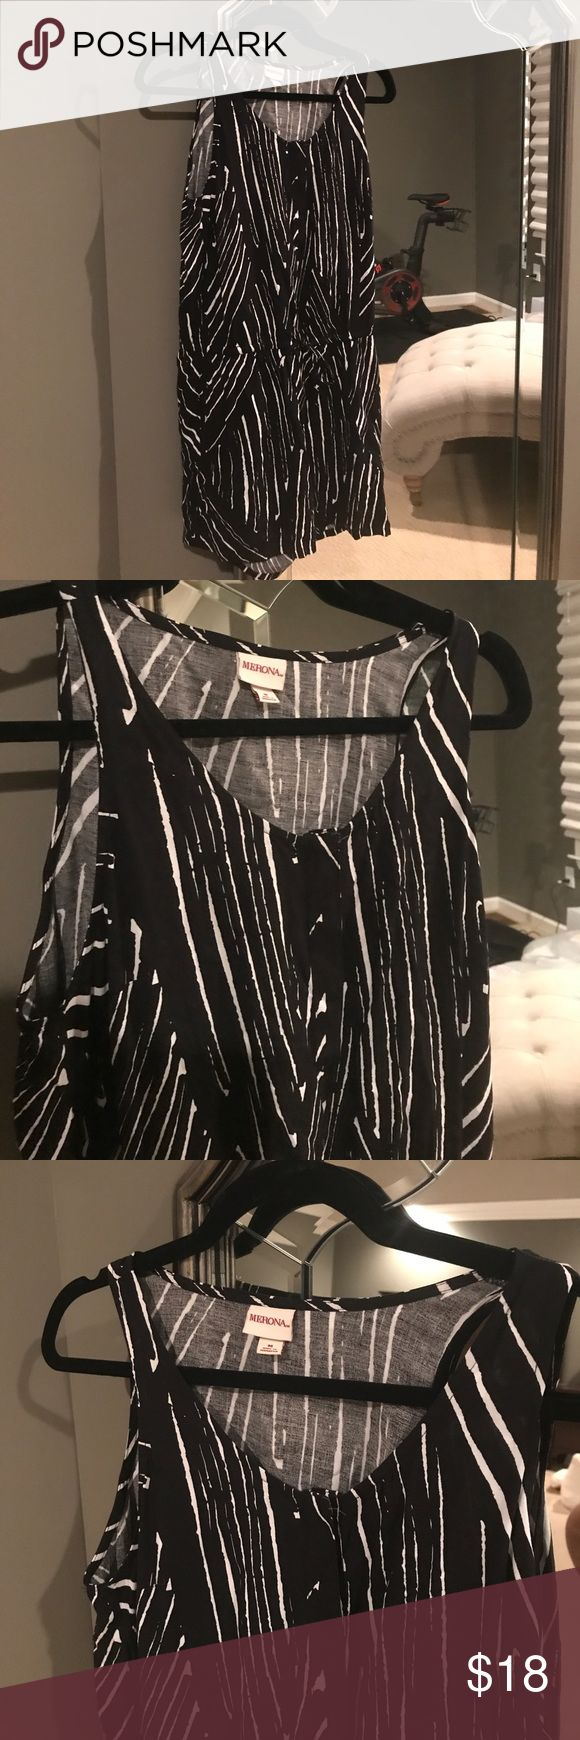 Target Romper new with tags Black and white design. Never been worn new with tags! Merona Other